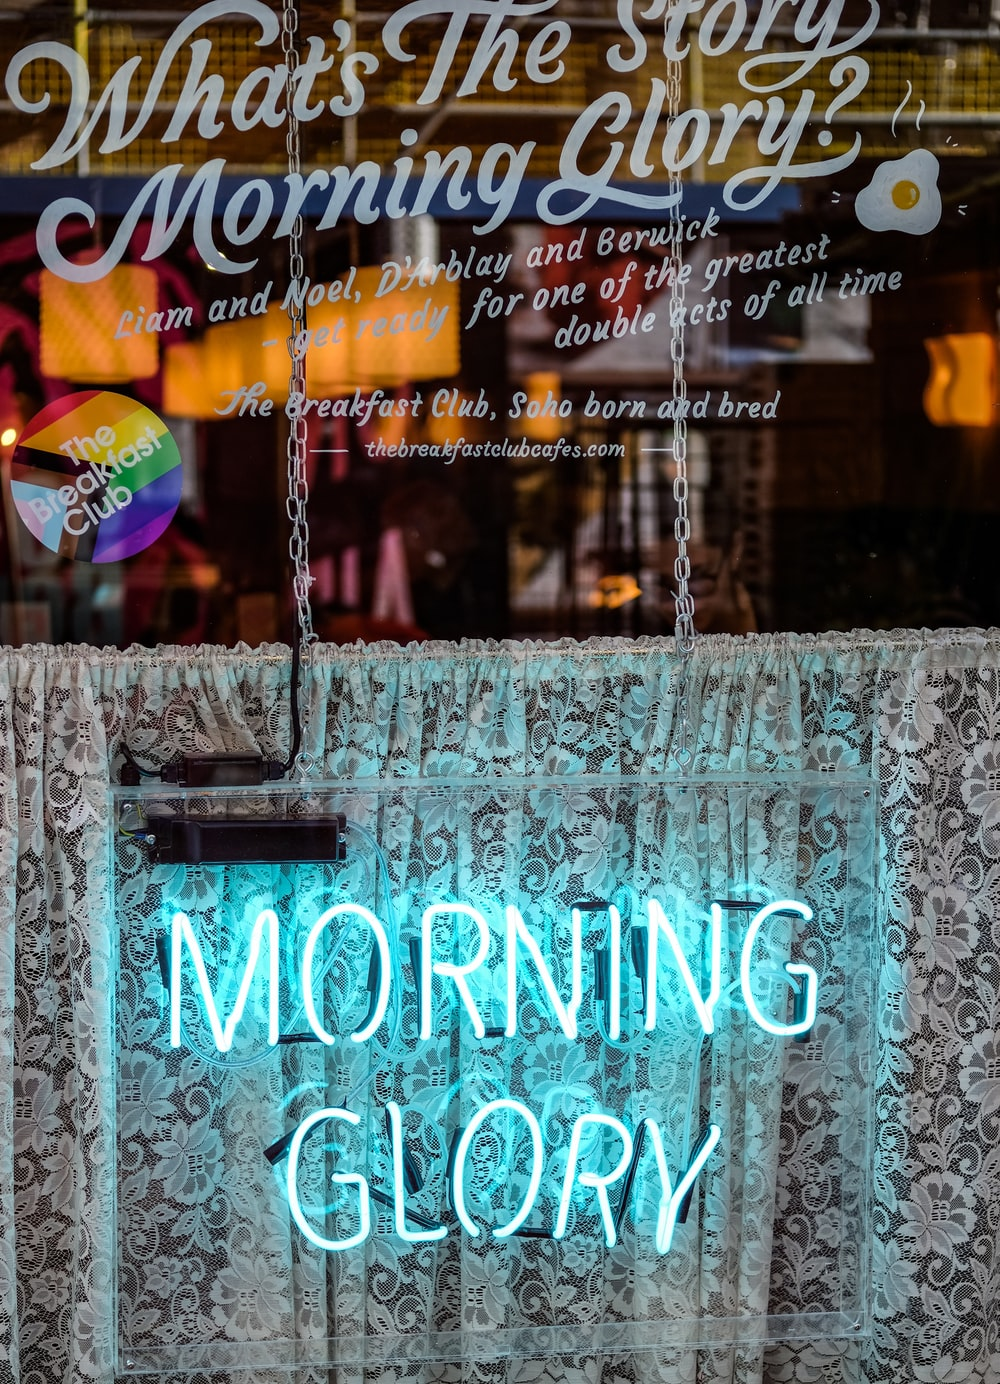 powered-on teal morning glory signage